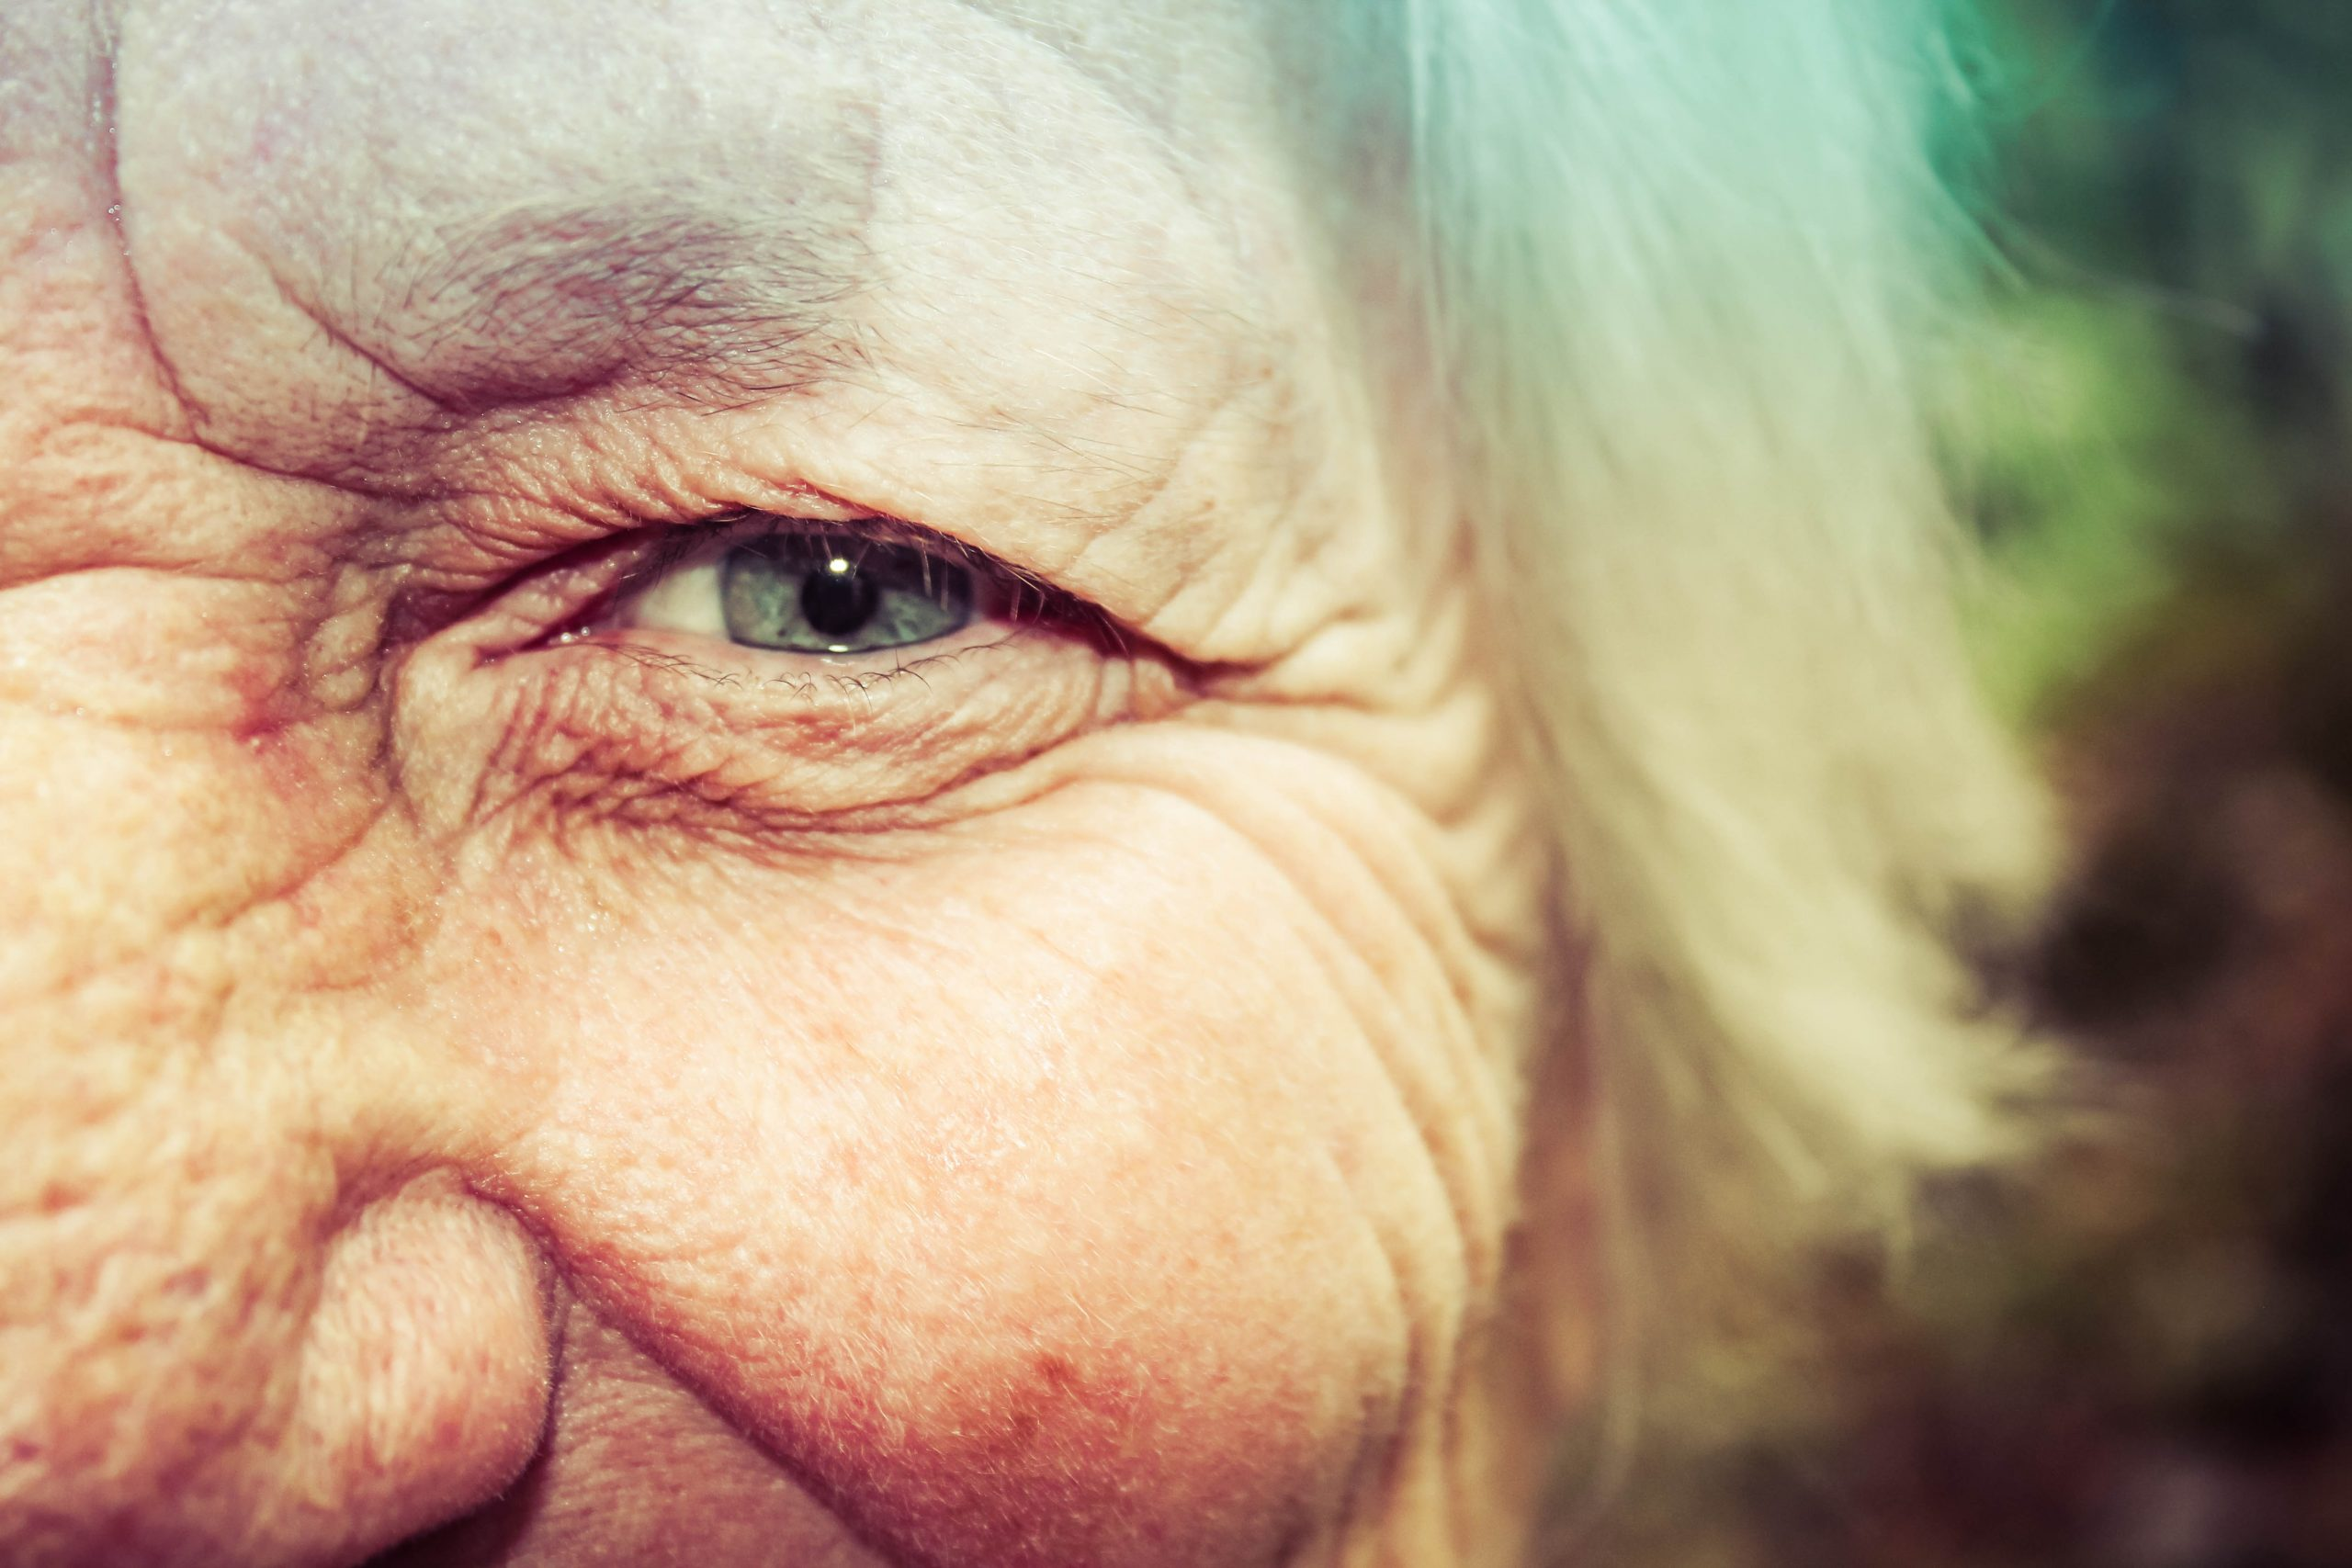 Close up of older lady's face focusing on her eye